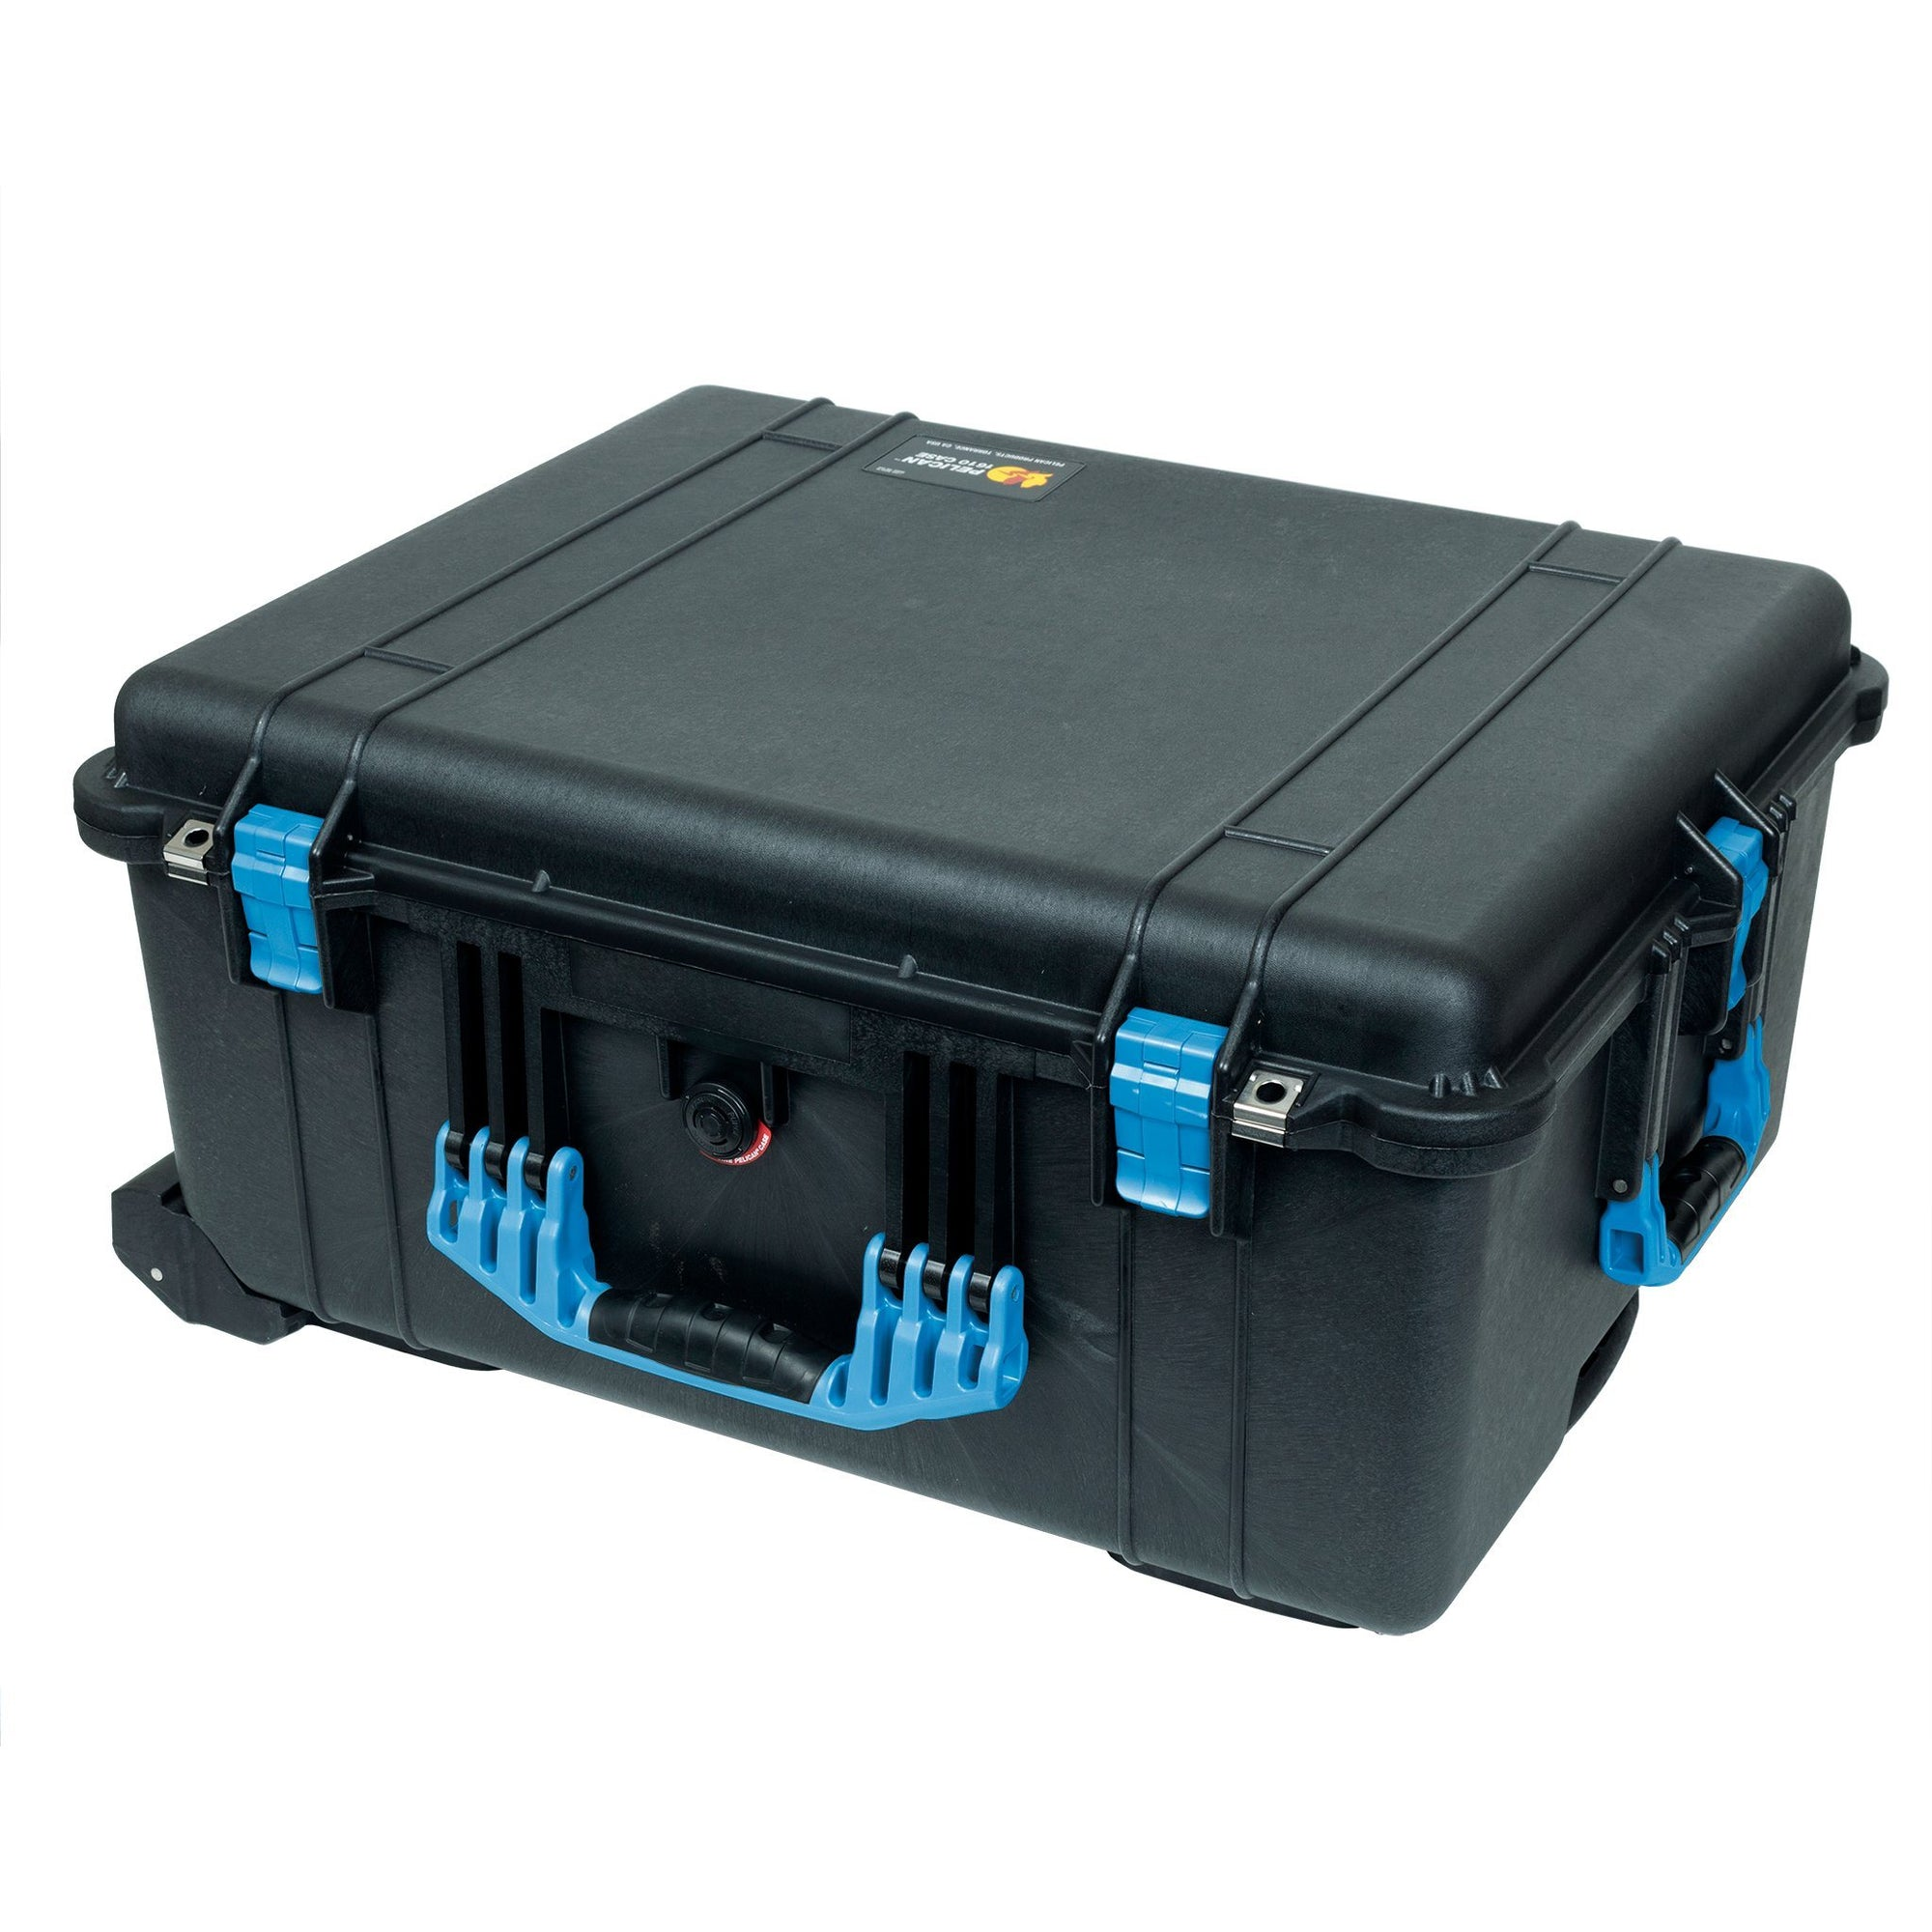 Pelican 1620 Black and Blue Case